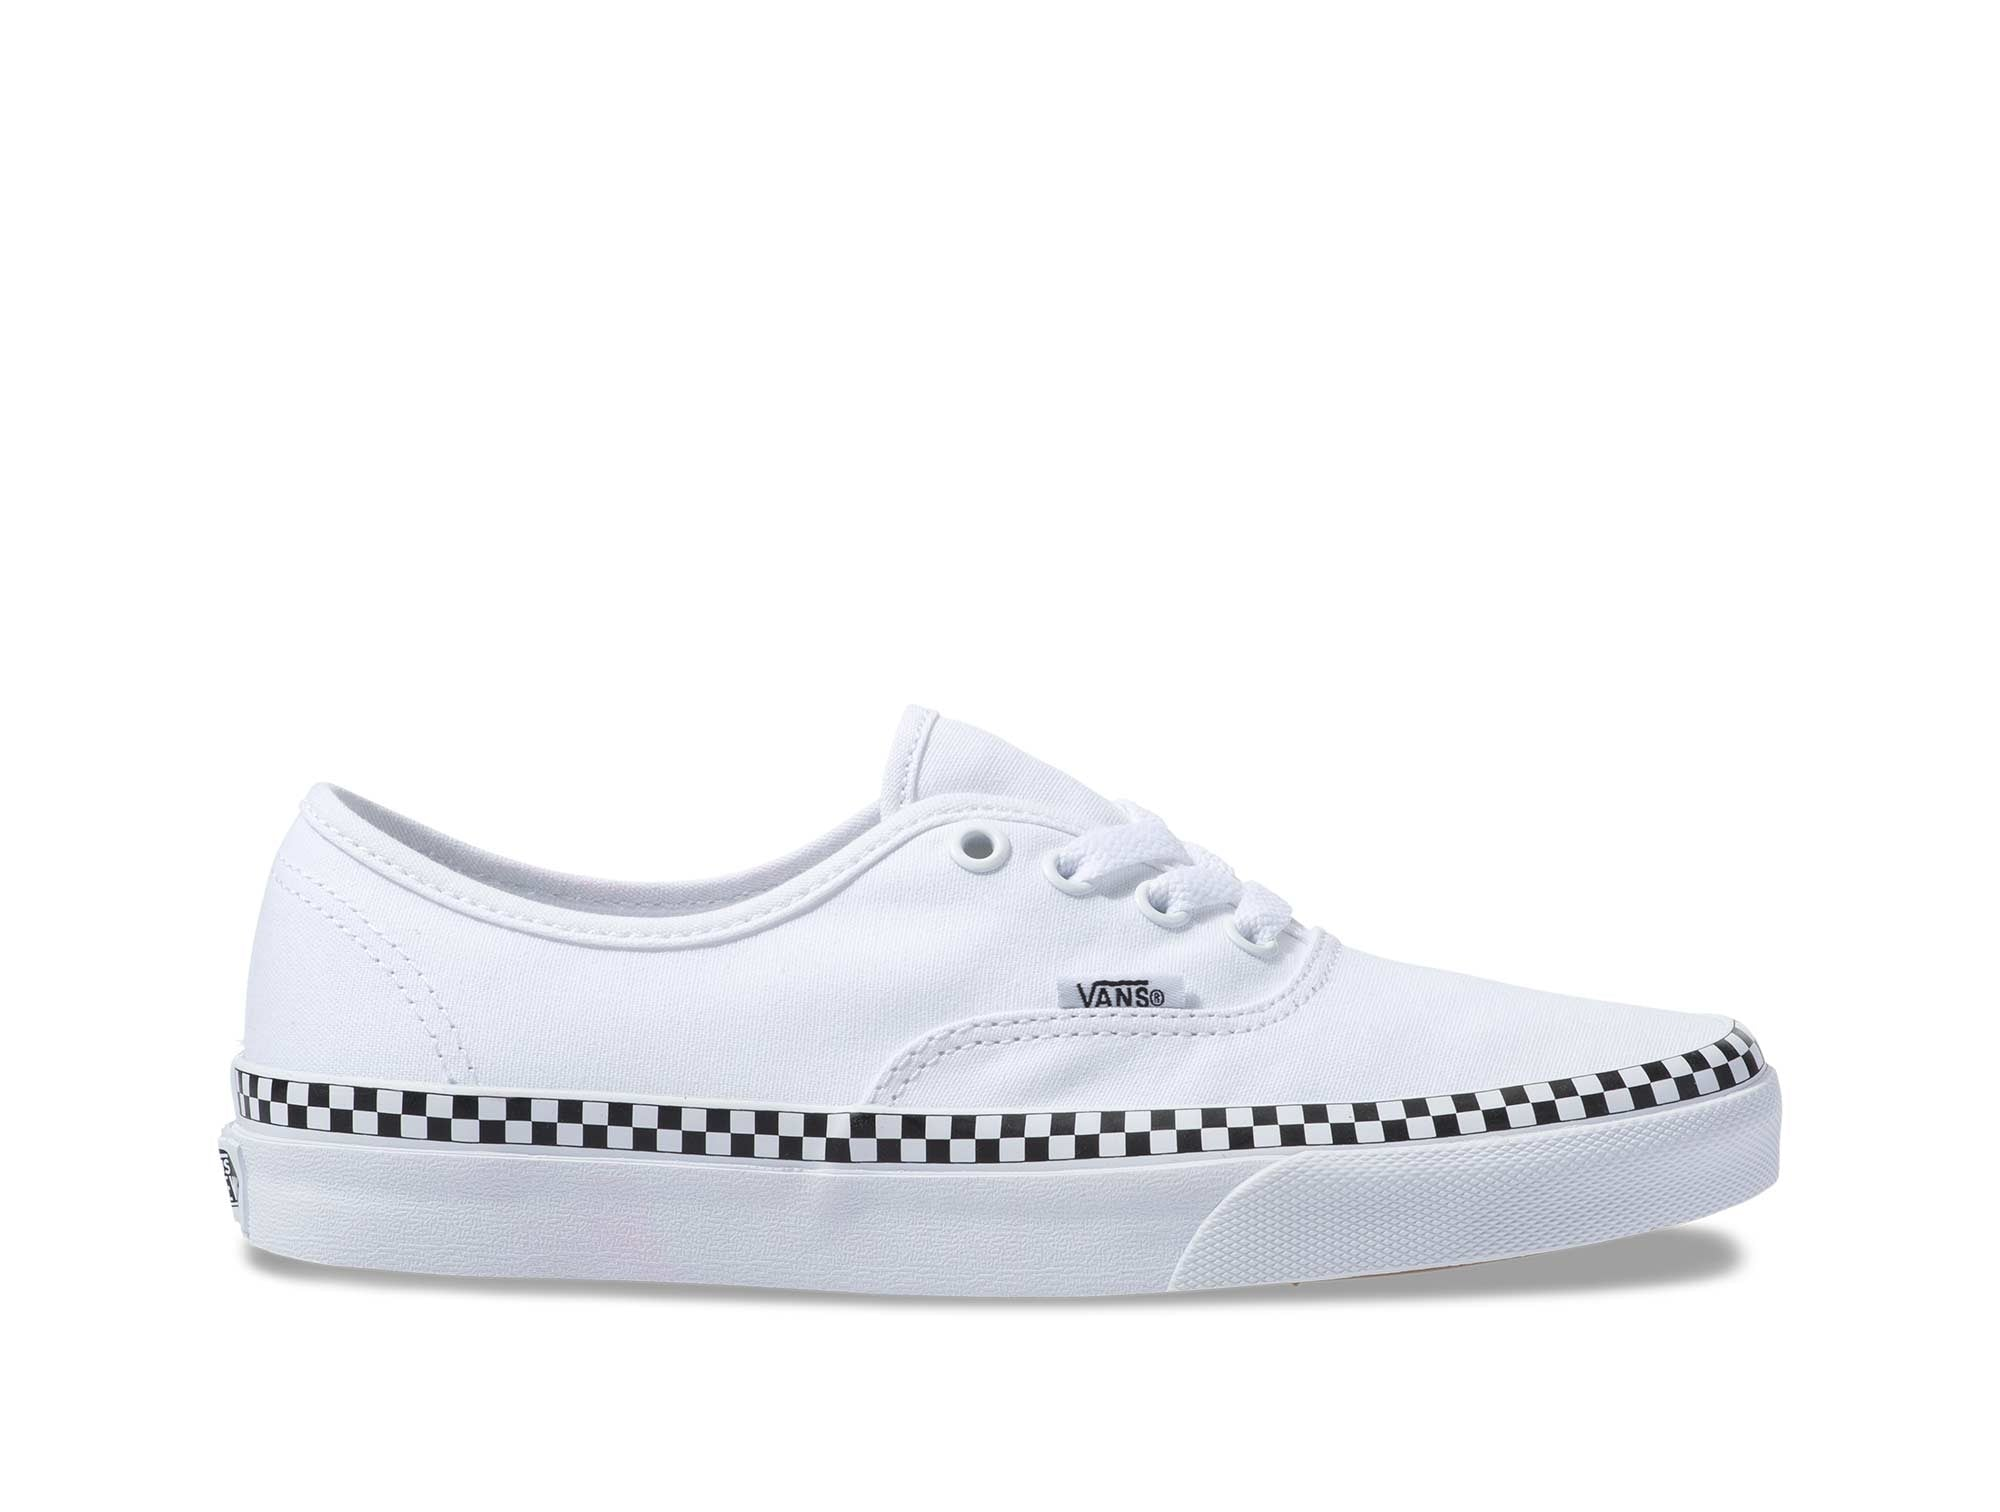 Zapatilla Vans Authentic Check Foxing Mujer Blanco